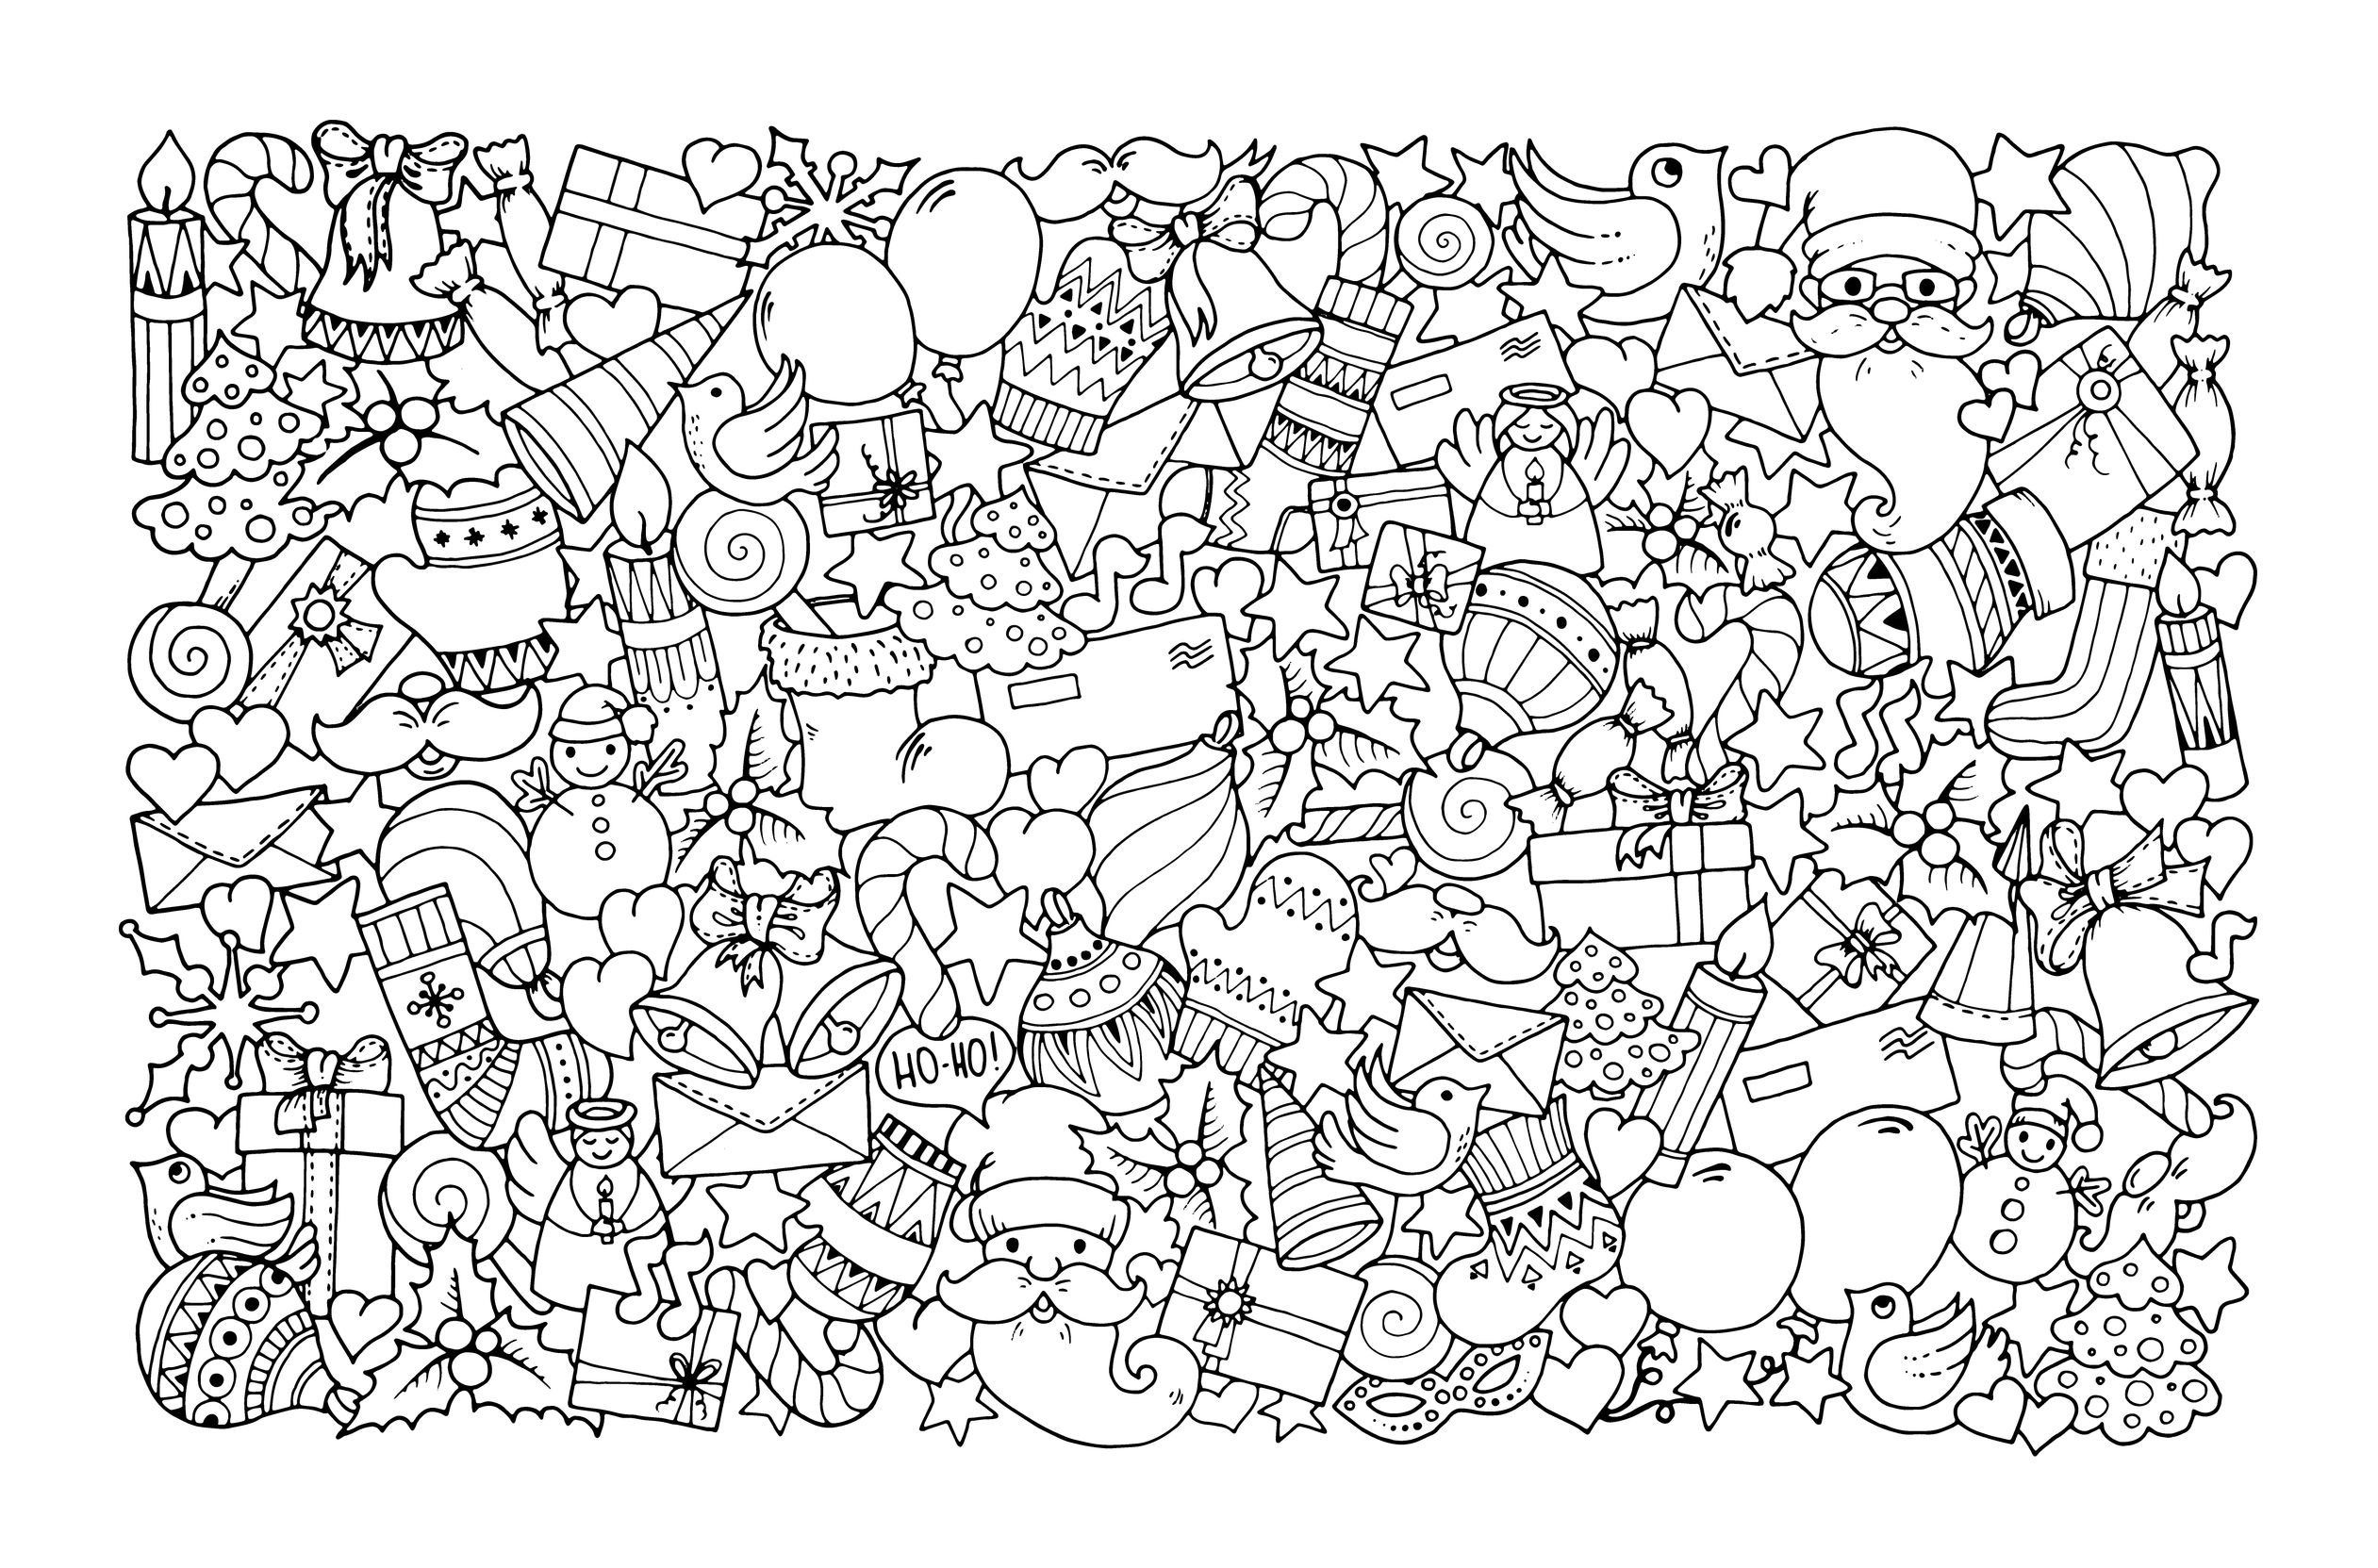 istmas coloring pages - photo#49